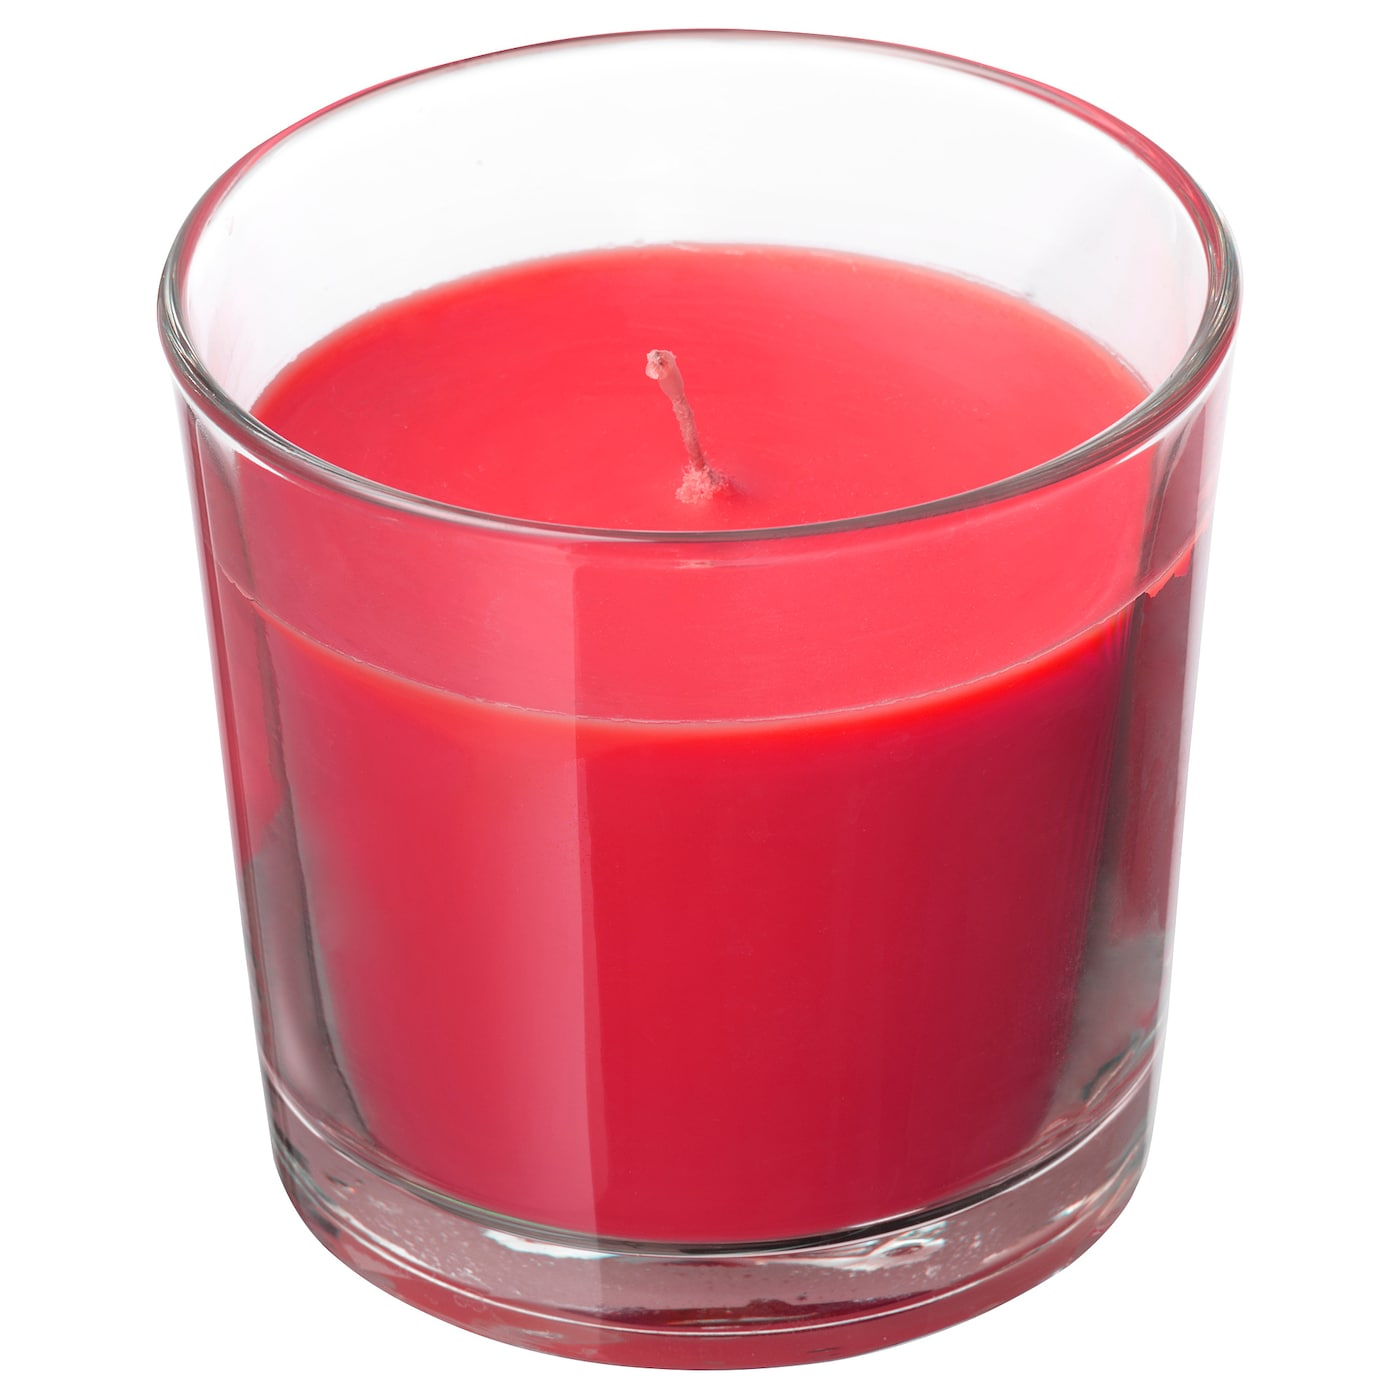 IKEA SINNLIG scented candle in glass Ripe scent of sweet red berries with a slight hint of flowers.